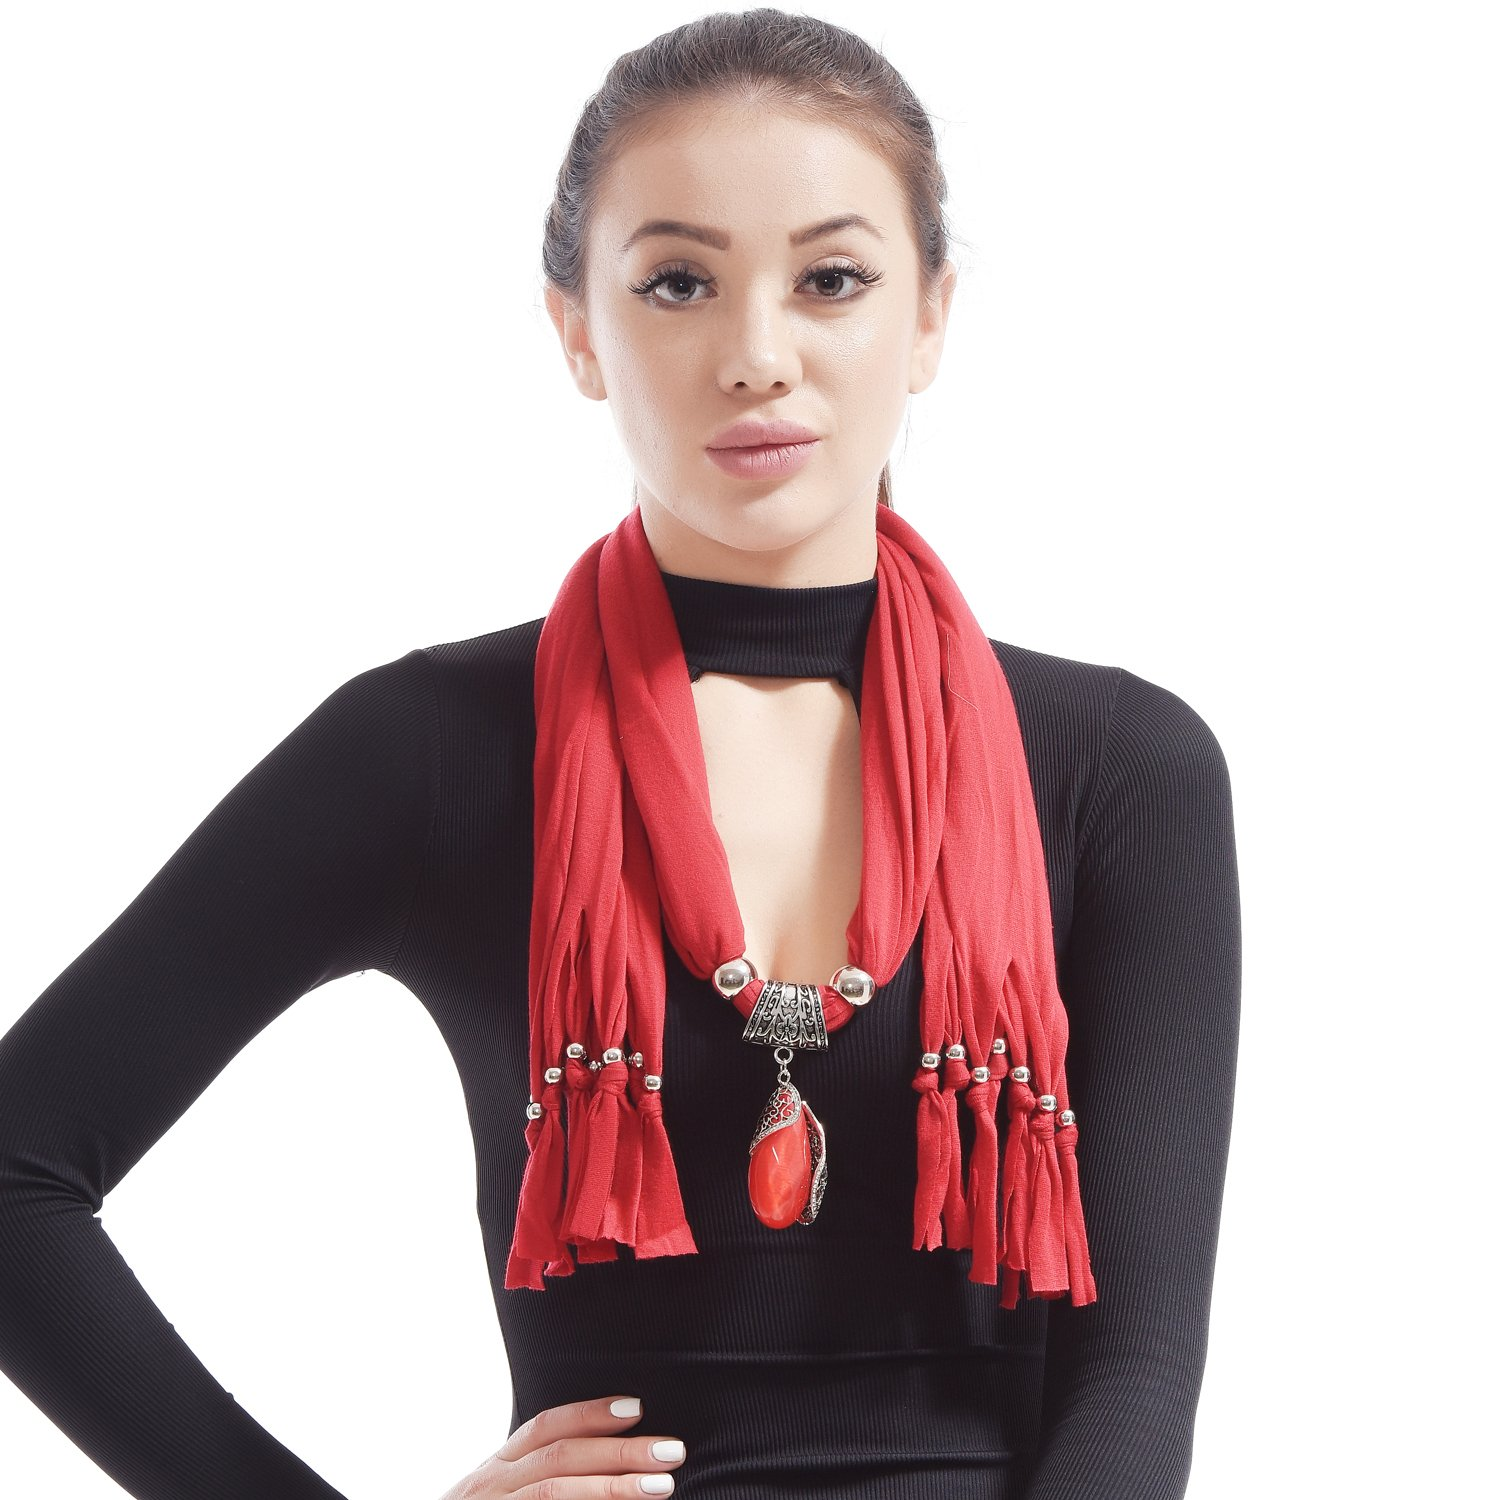 LERDU Gift Idea Indian Pear Shaped Stone Pendant Red Scarf Necklace Soft Jersey Infinity Scarf Tassel Jewelry for Women